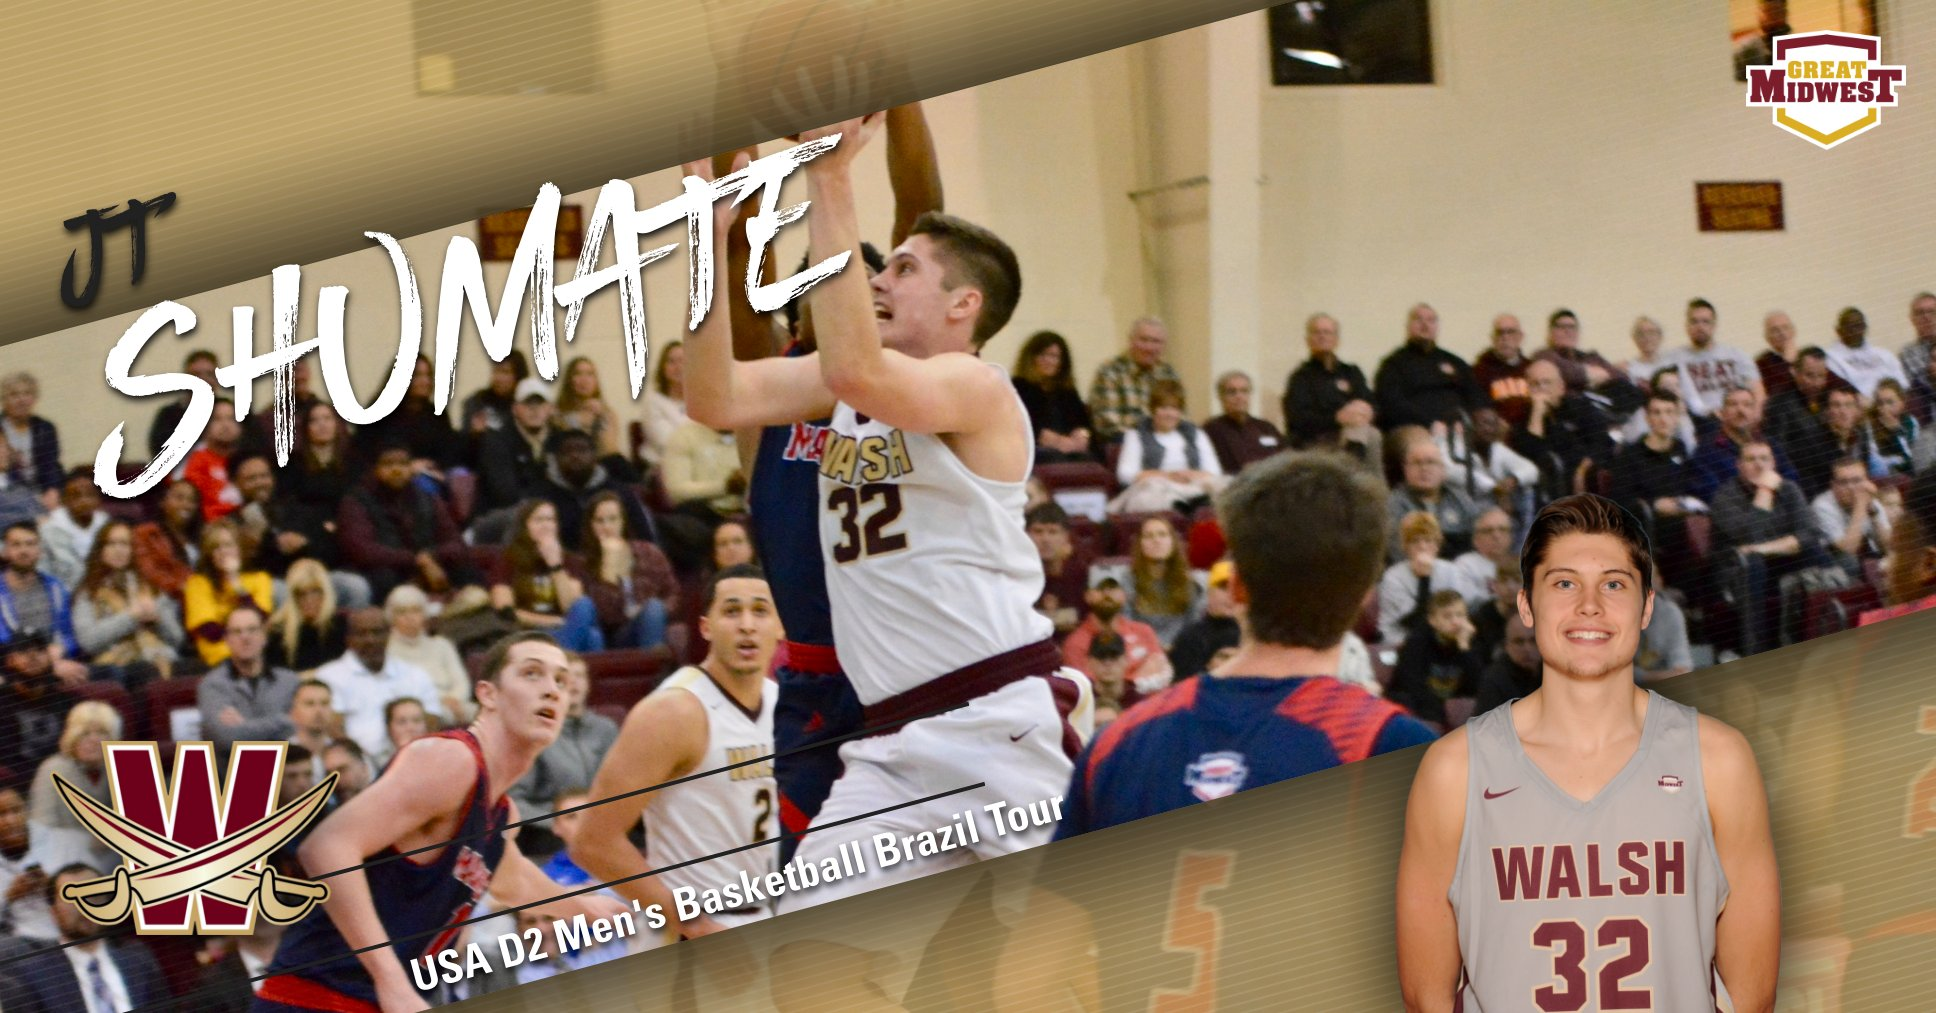 JT Shumate Named to USA D2 Men's Basketball Tour in Brazil